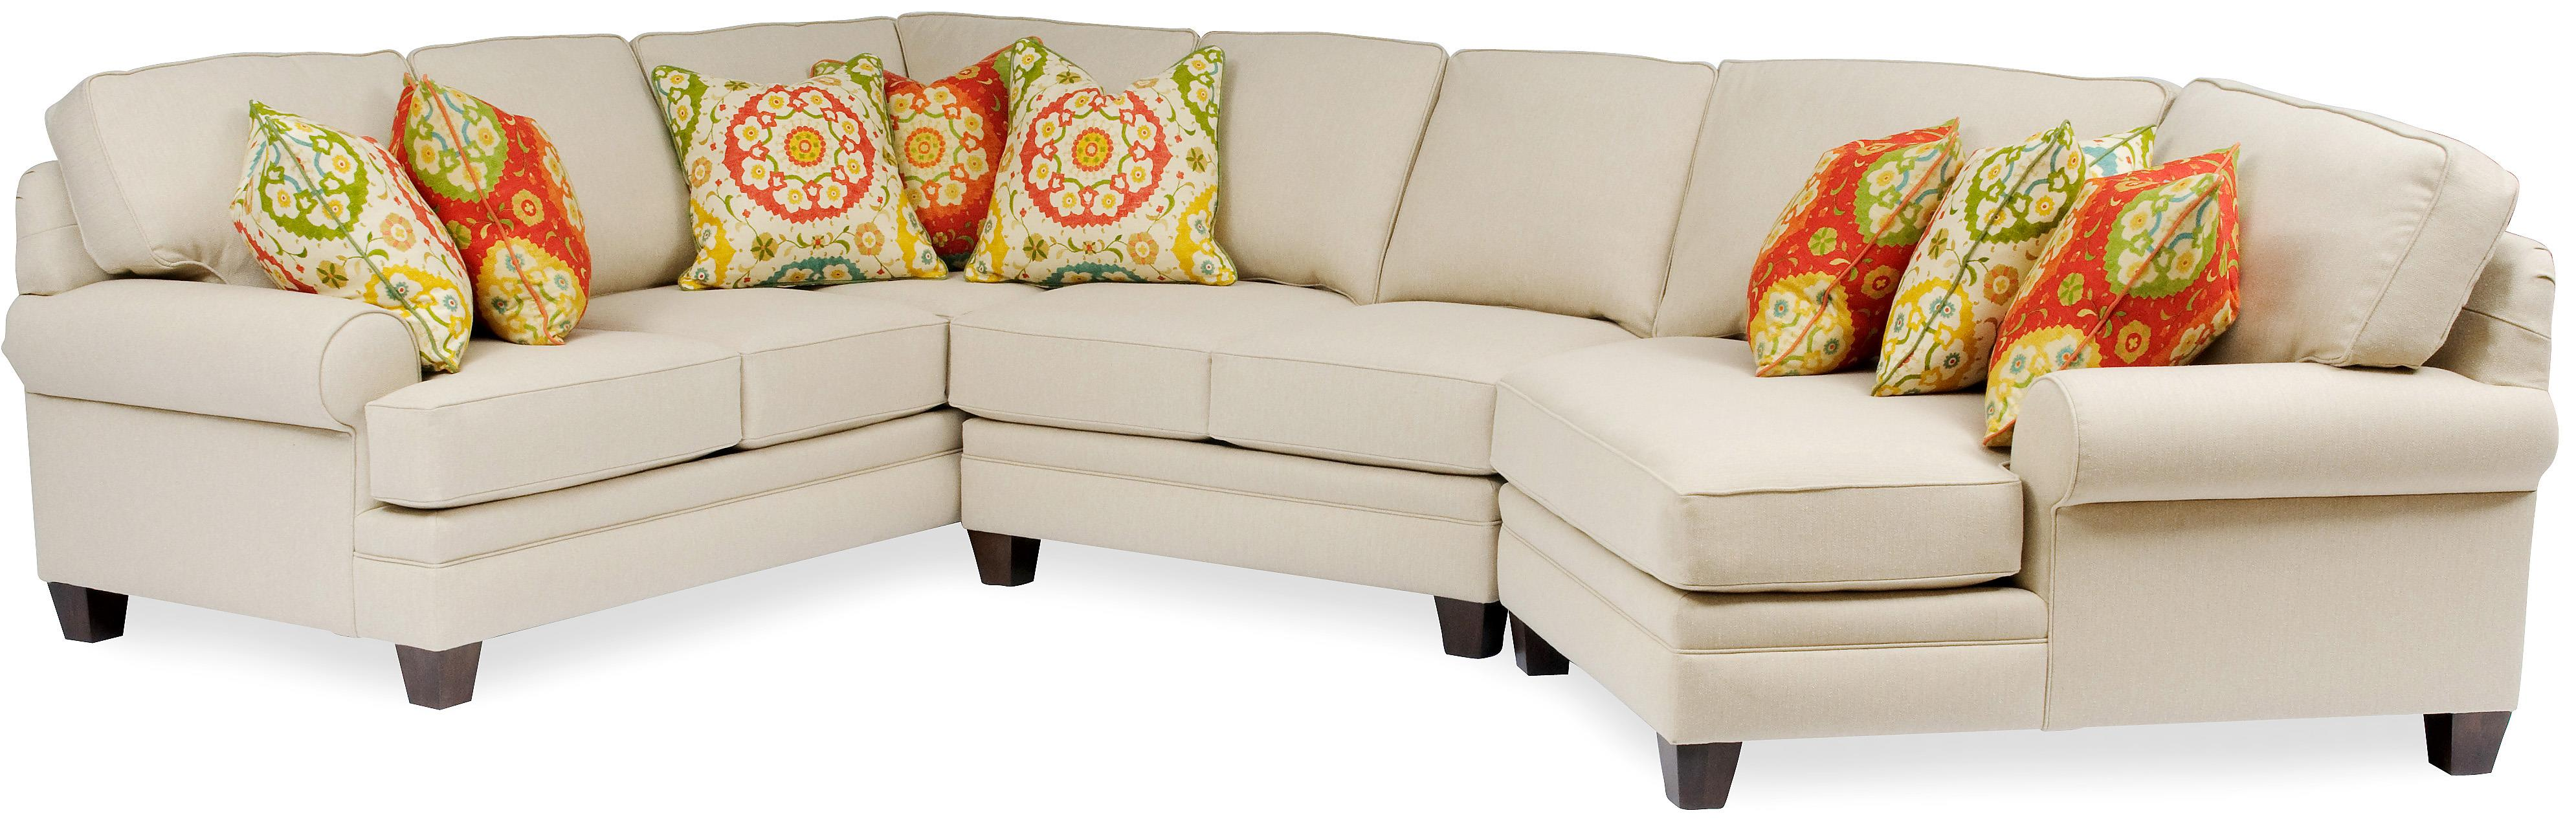 Sectional with Rolled Arms by Smith Brothers